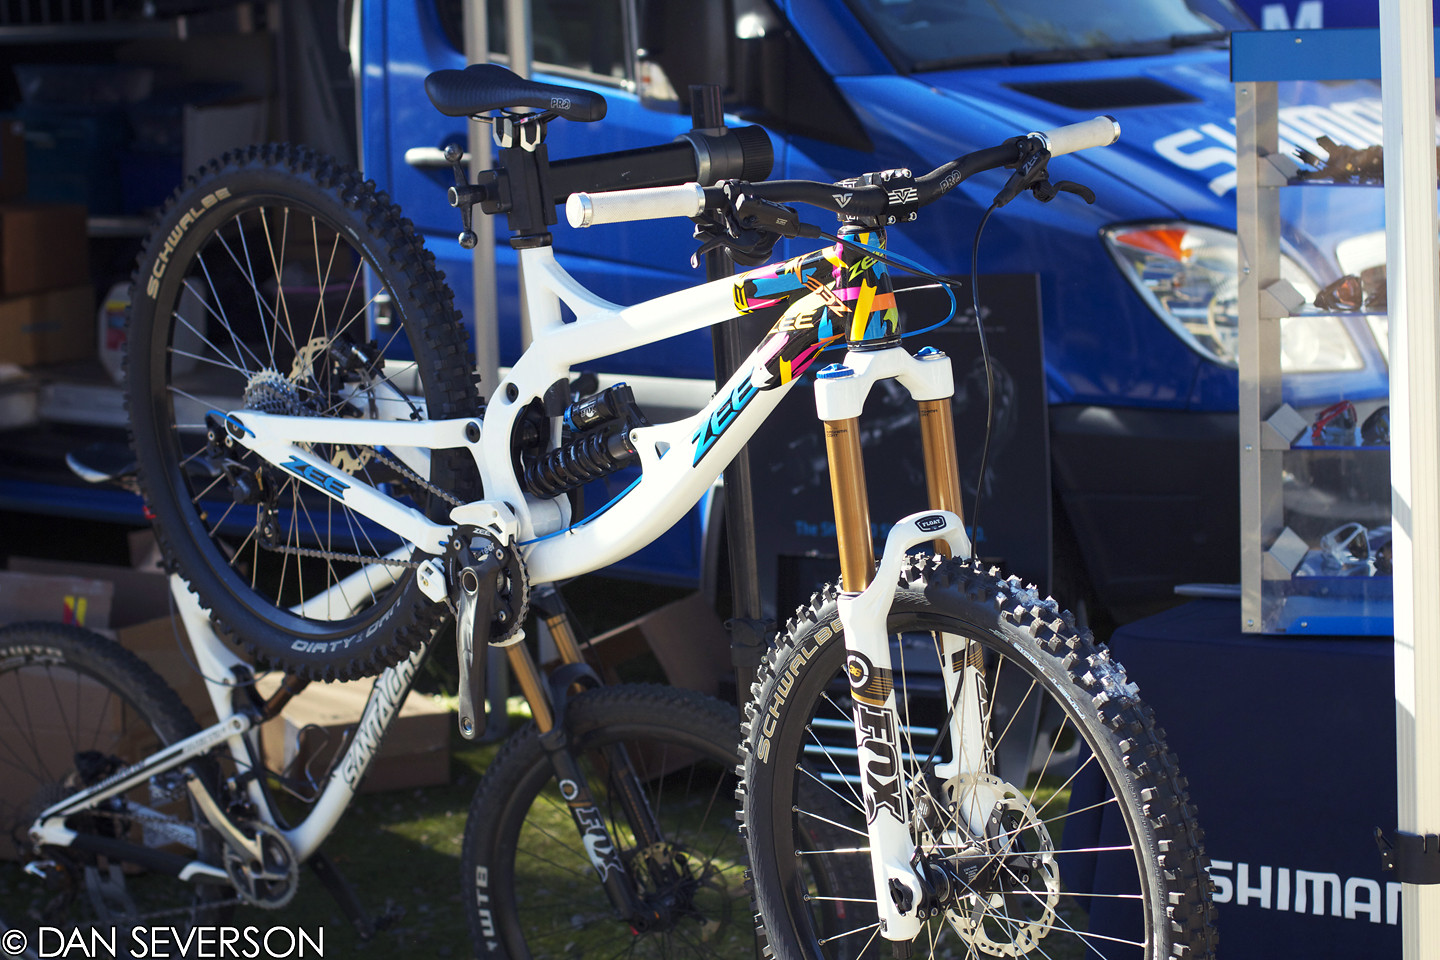 Shimano's Zee Display Bike! - danseverson photo - Mountain Biking Pictures - Vital MTB